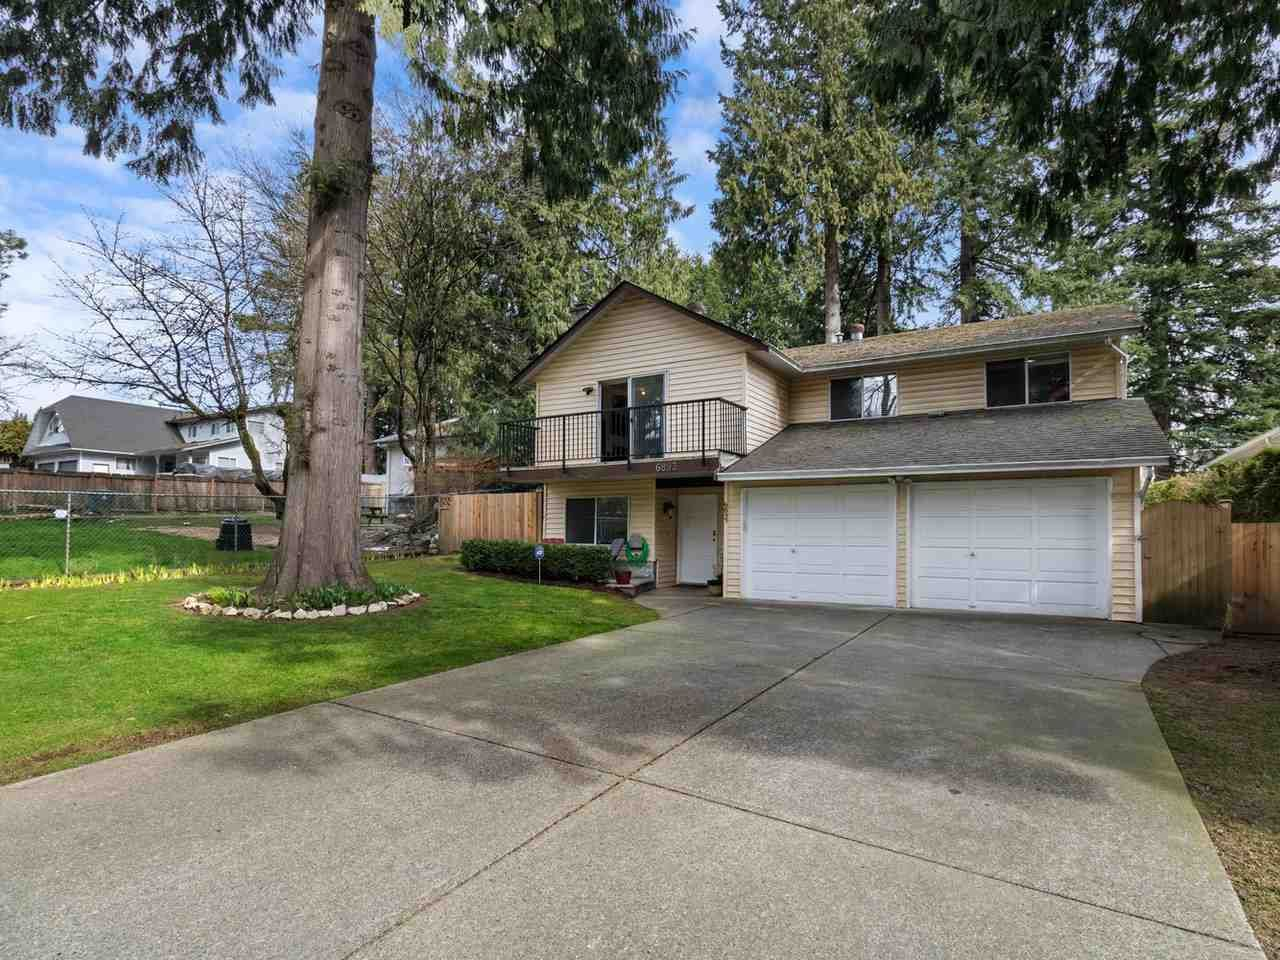 Main Photo: 6893 144 Street in Surrey: East Newton House for sale : MLS®# R2557473